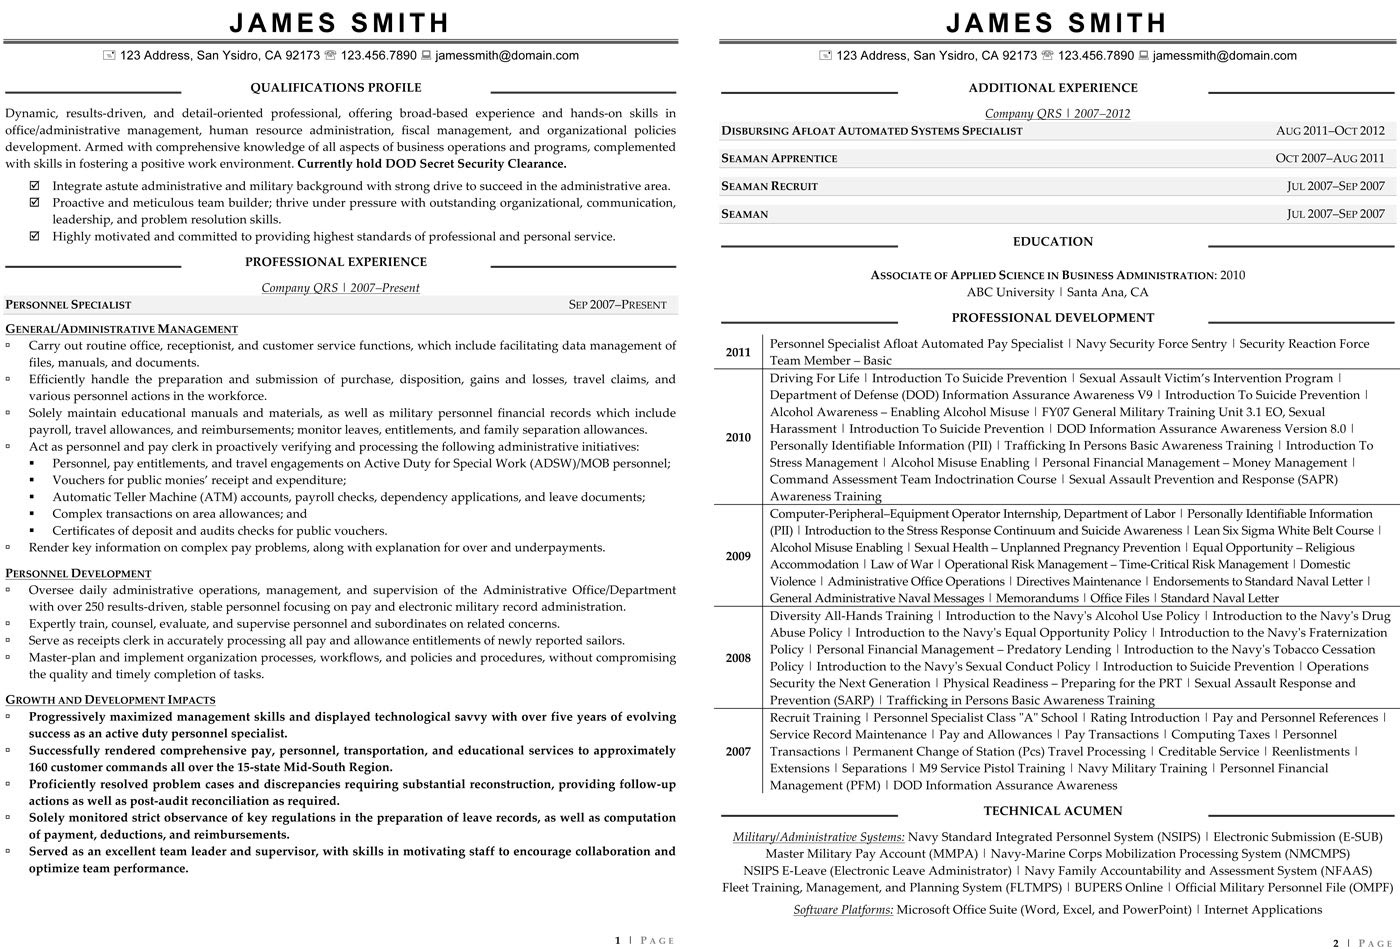 Human Resource Generalist Resume  Human Resource Management Resume